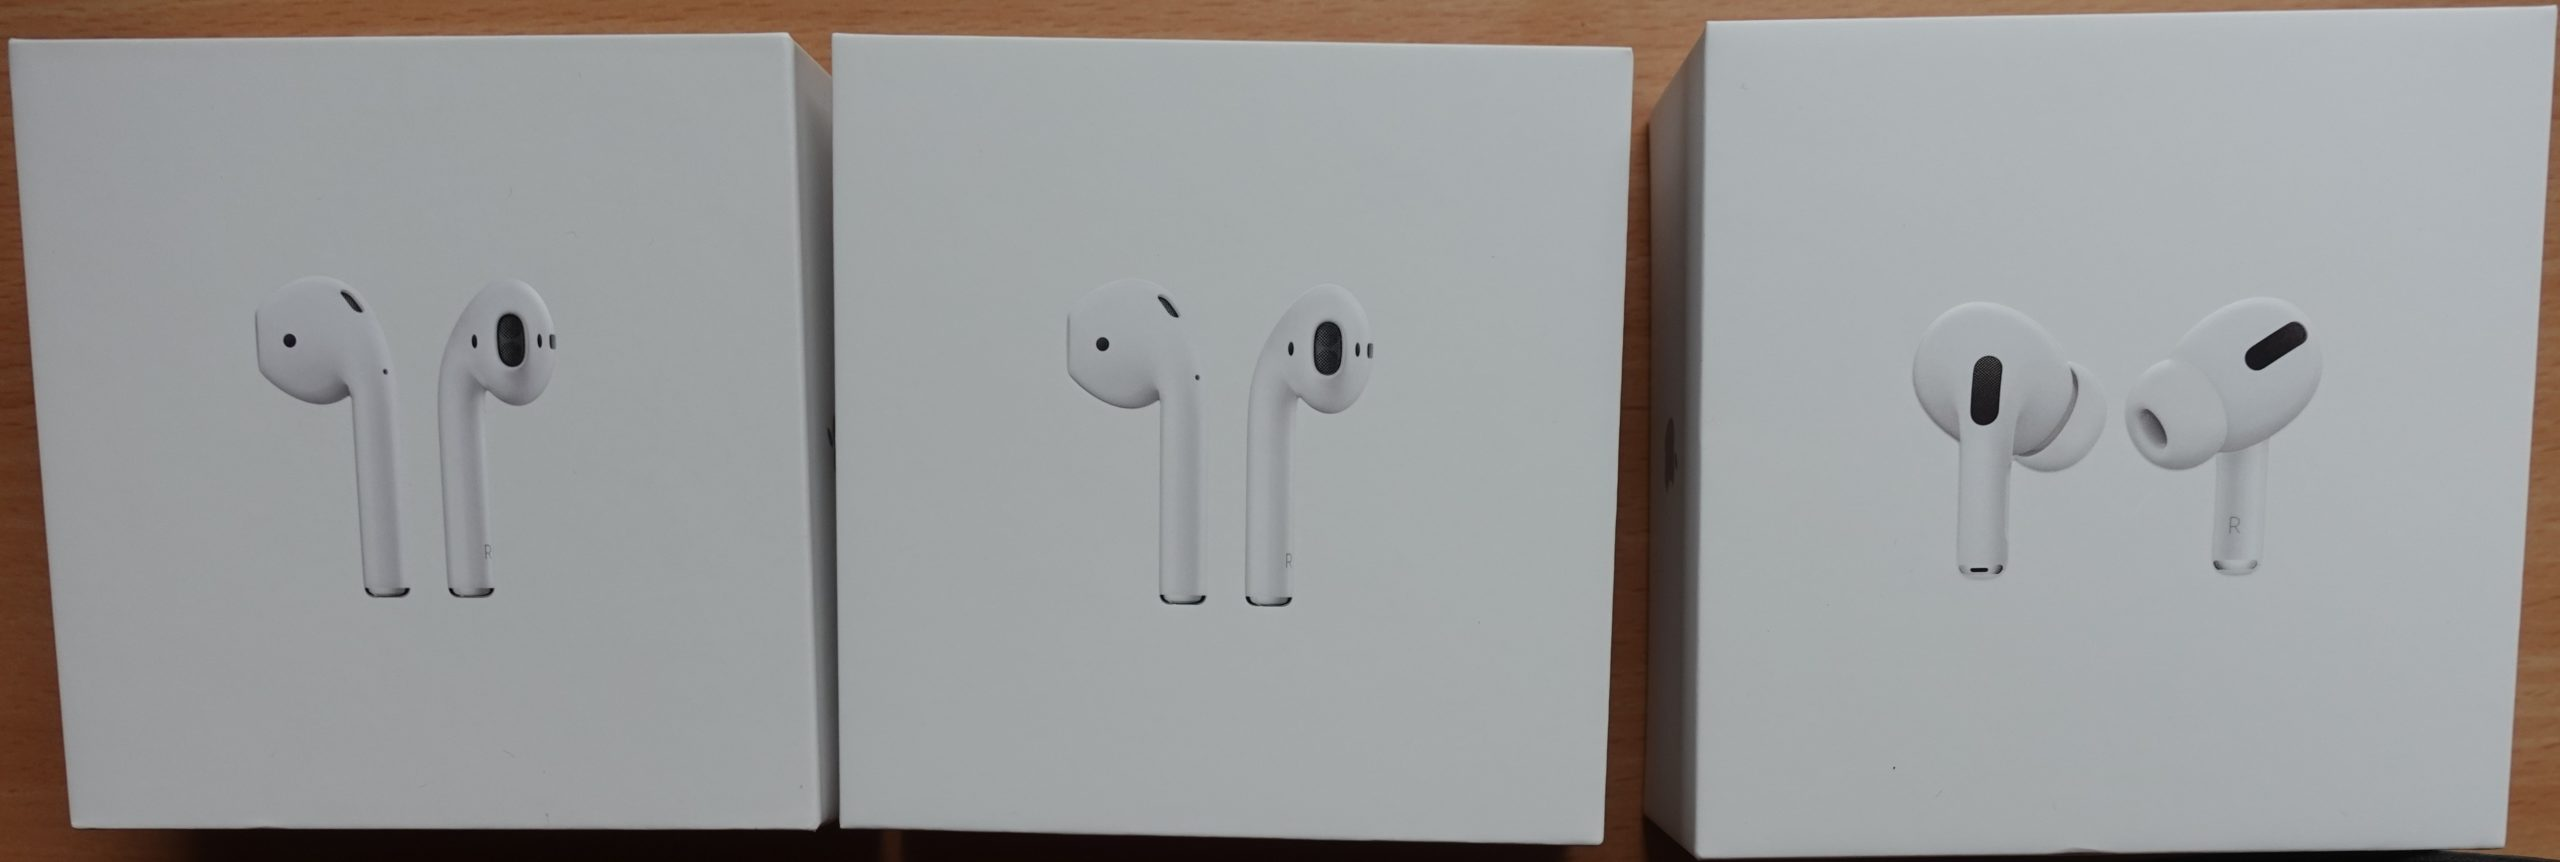 Apple AirPods Aufmacher